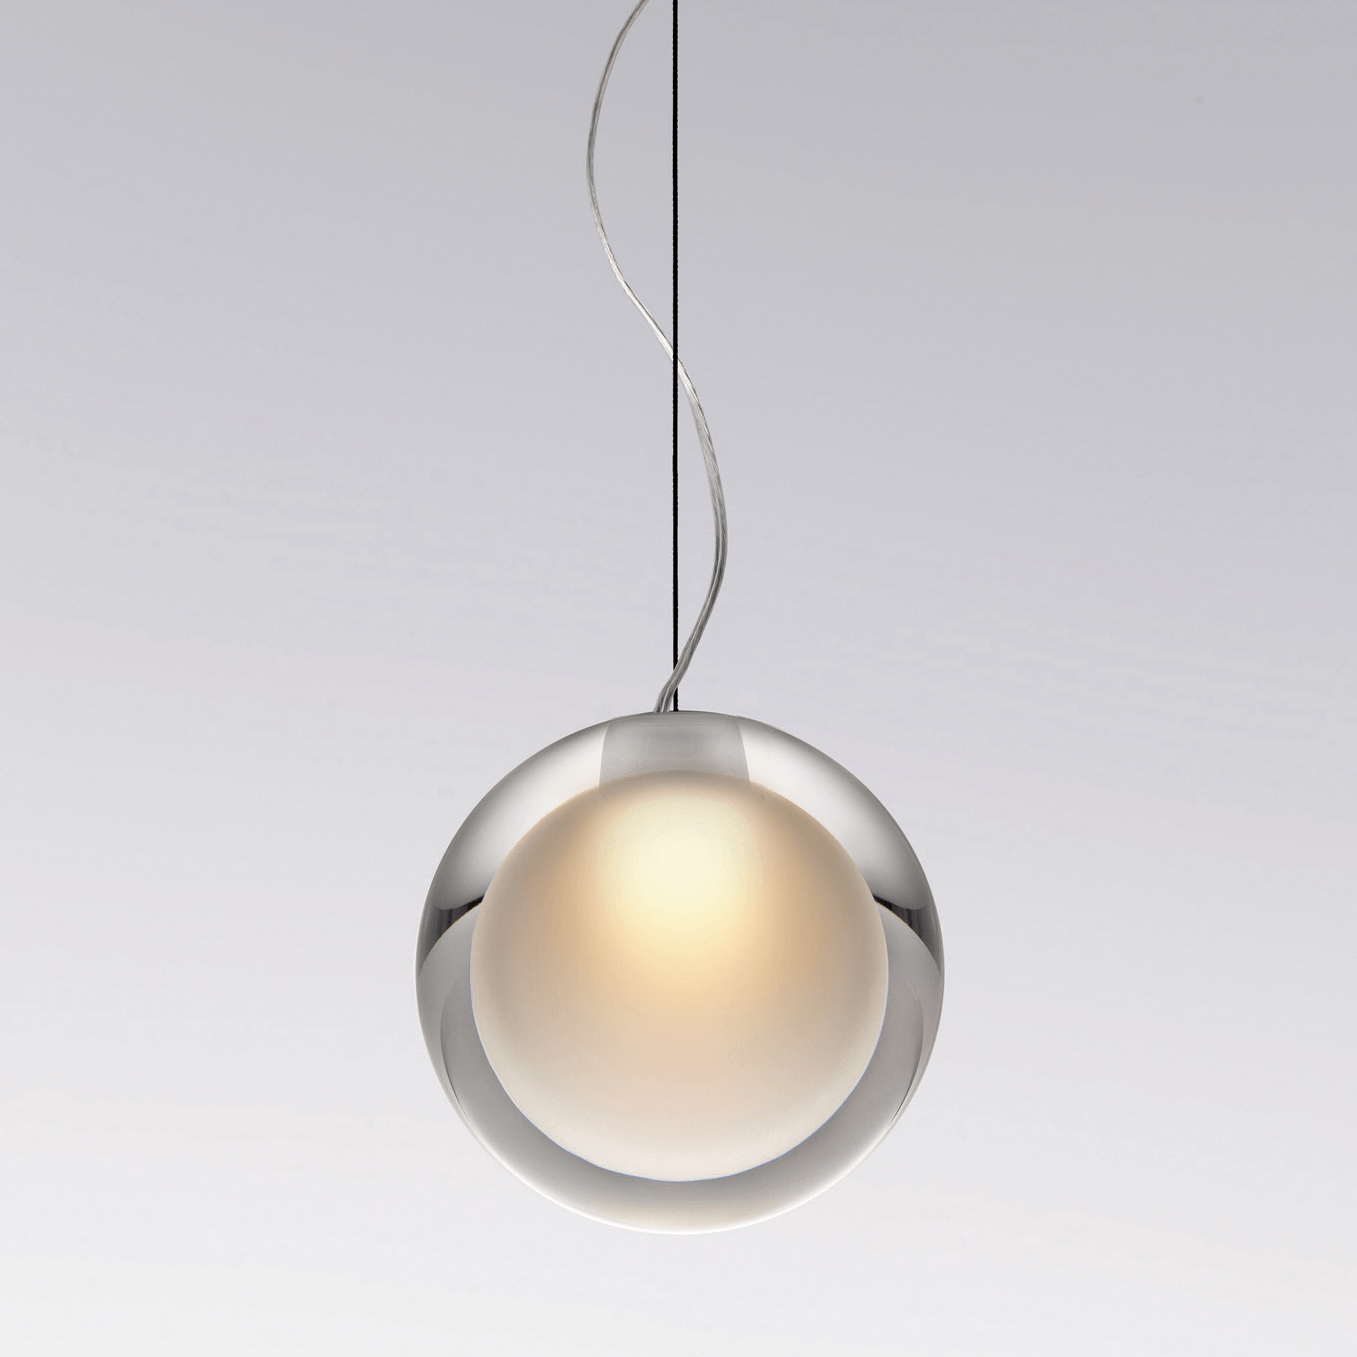 Yamagiwa Mayuhana Tear Drop Pendant Light